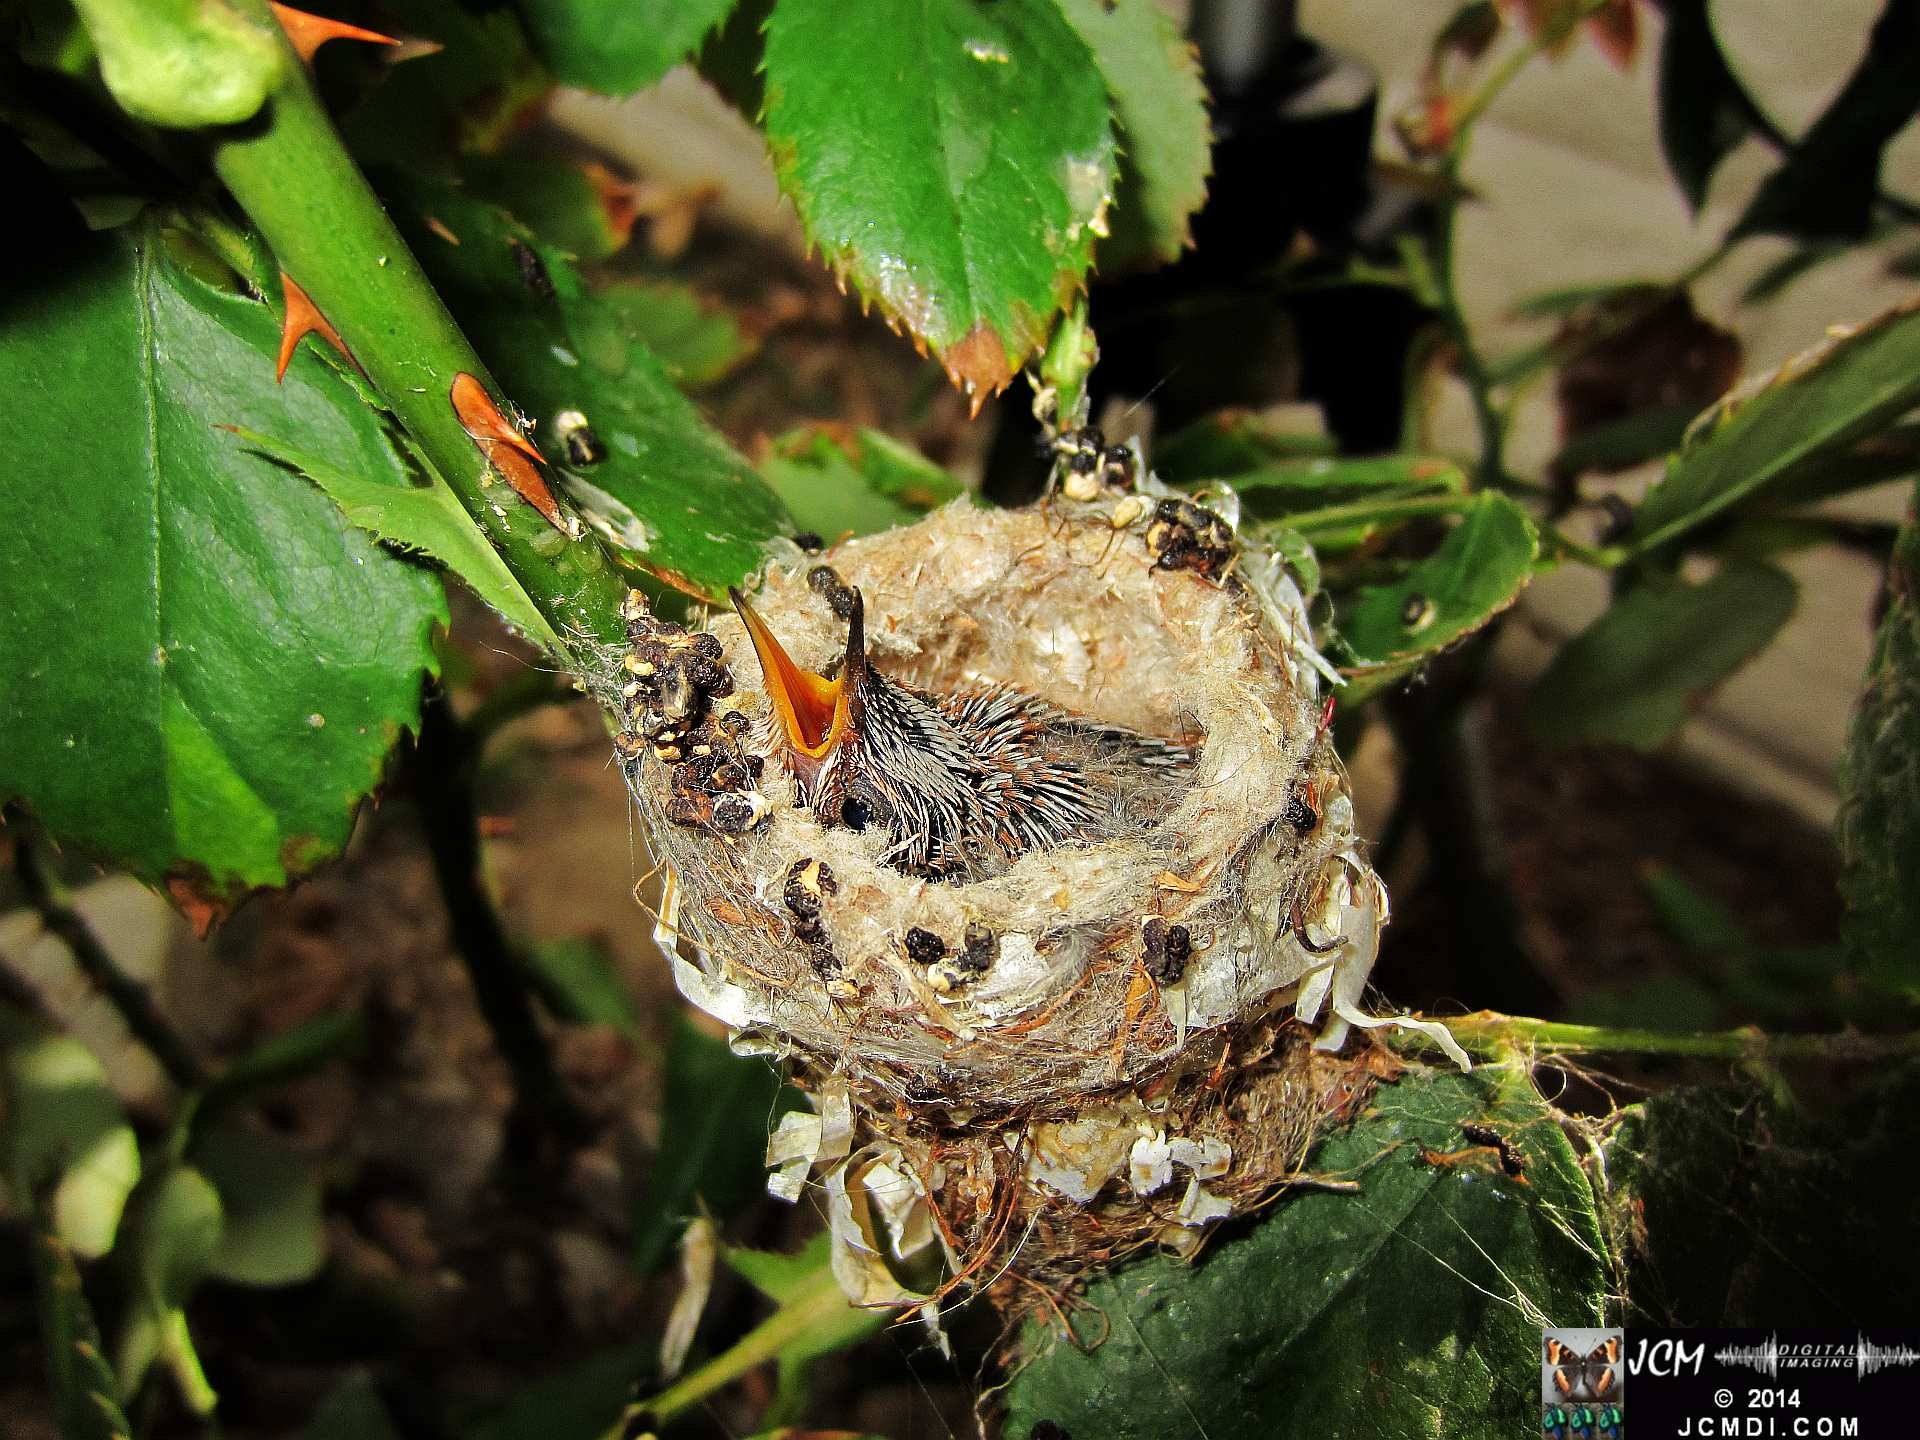 Allens Hummingbird Chick in Nest